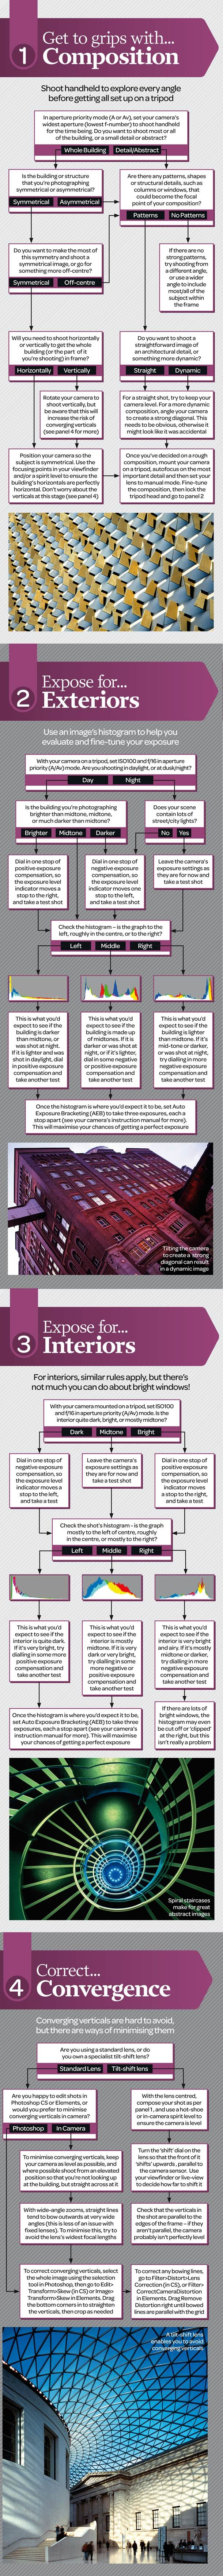 Free architecture photography cheat sheet: essential tips for taking better pictures of buildings